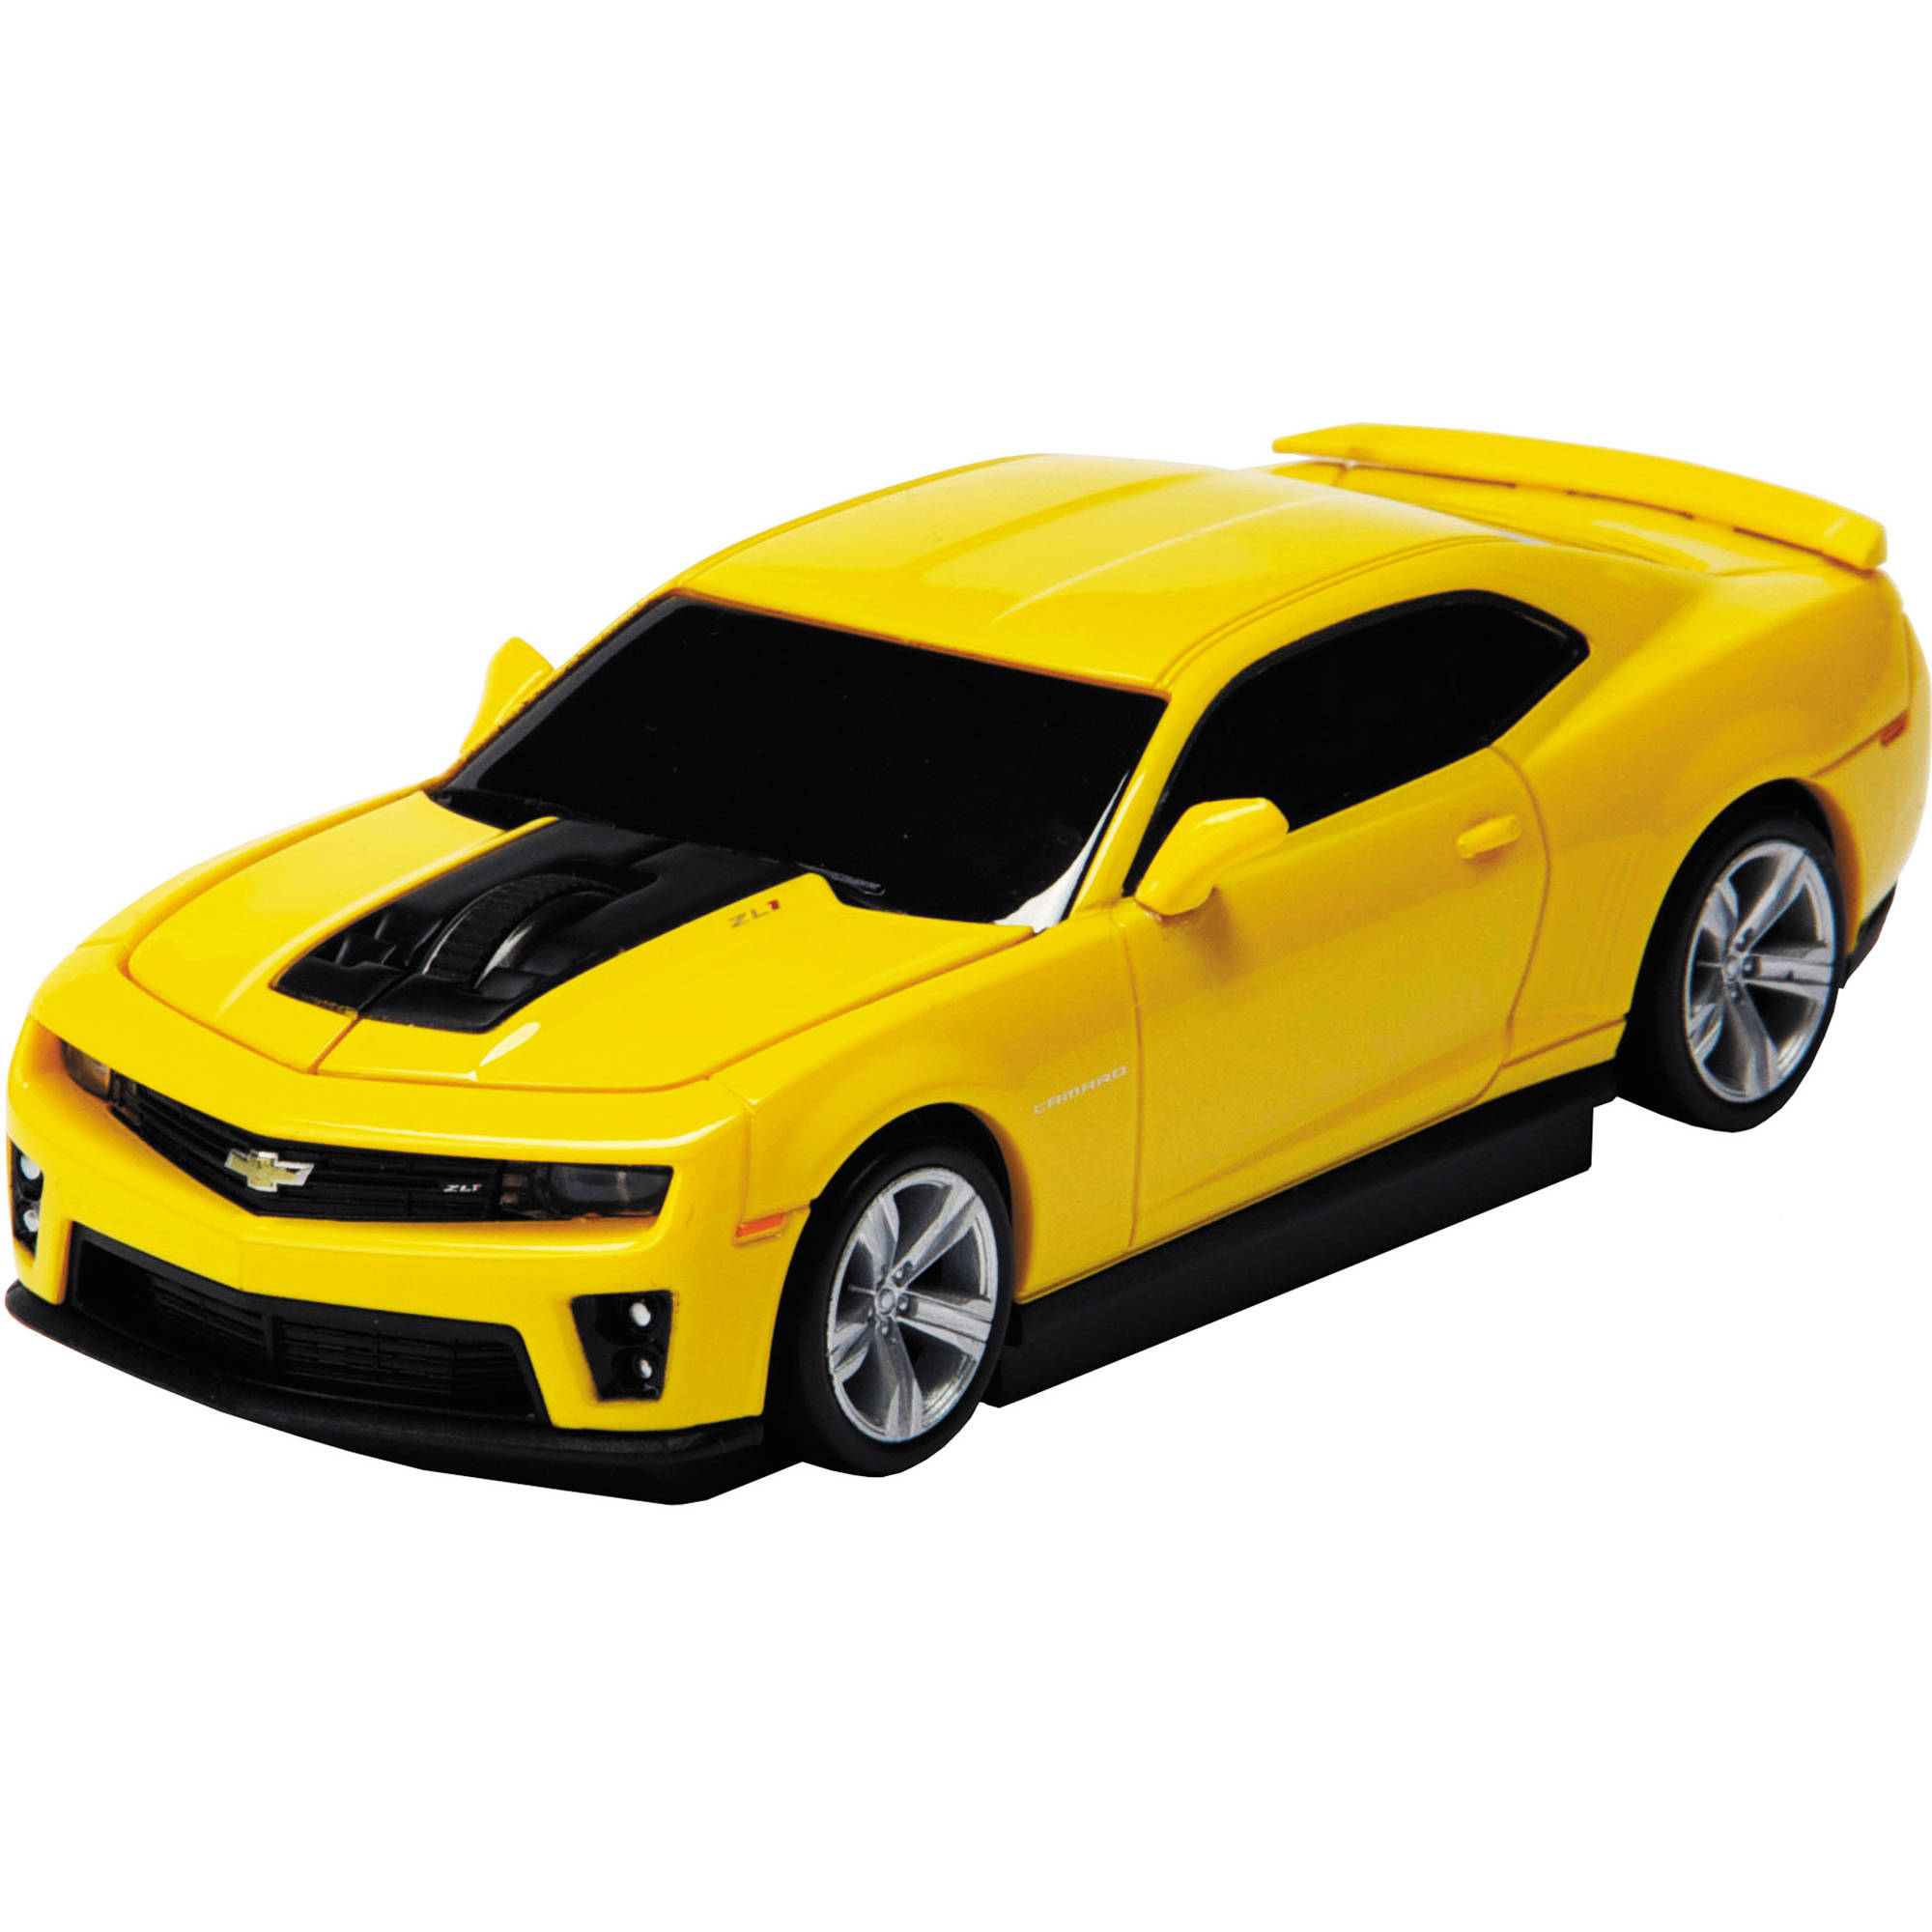 Camaro Zl Used Car